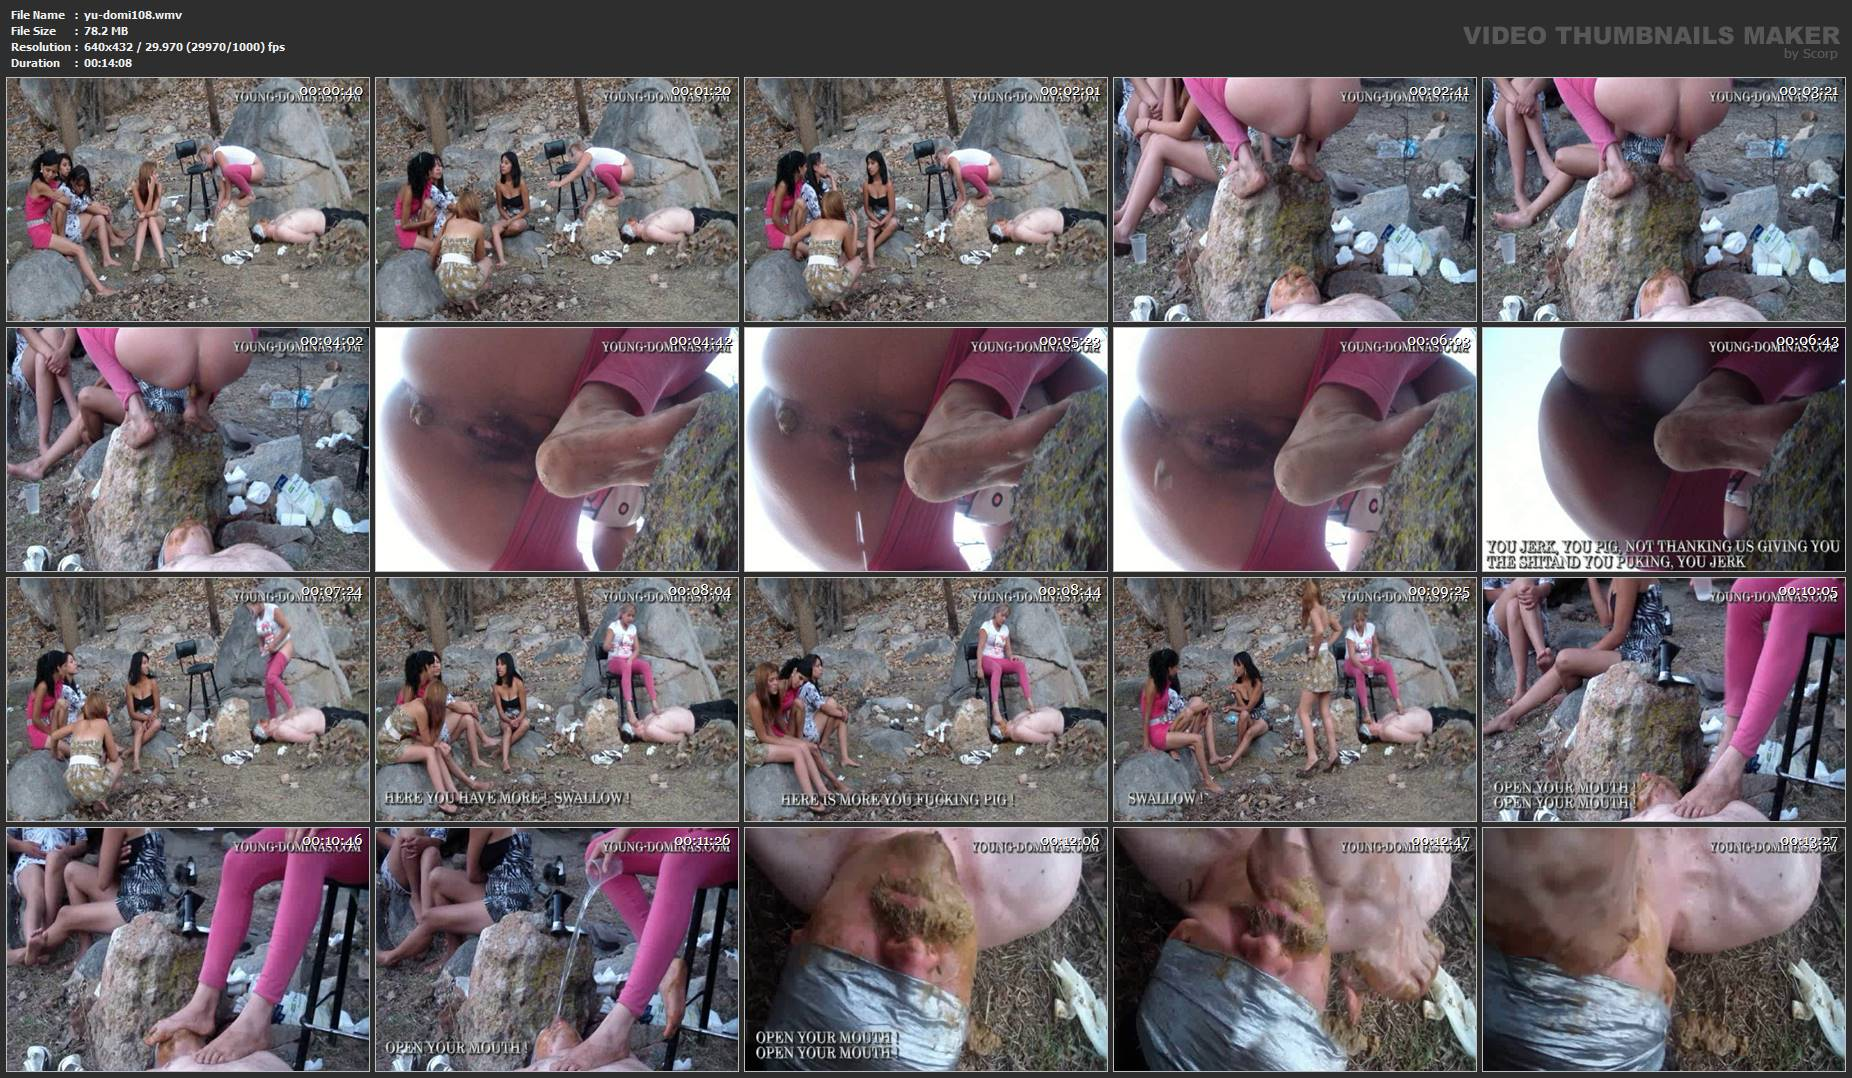 [YOUNG-DOMINAS] Quick Shit On The Rocks Part 5 [SD][432p][WMV]